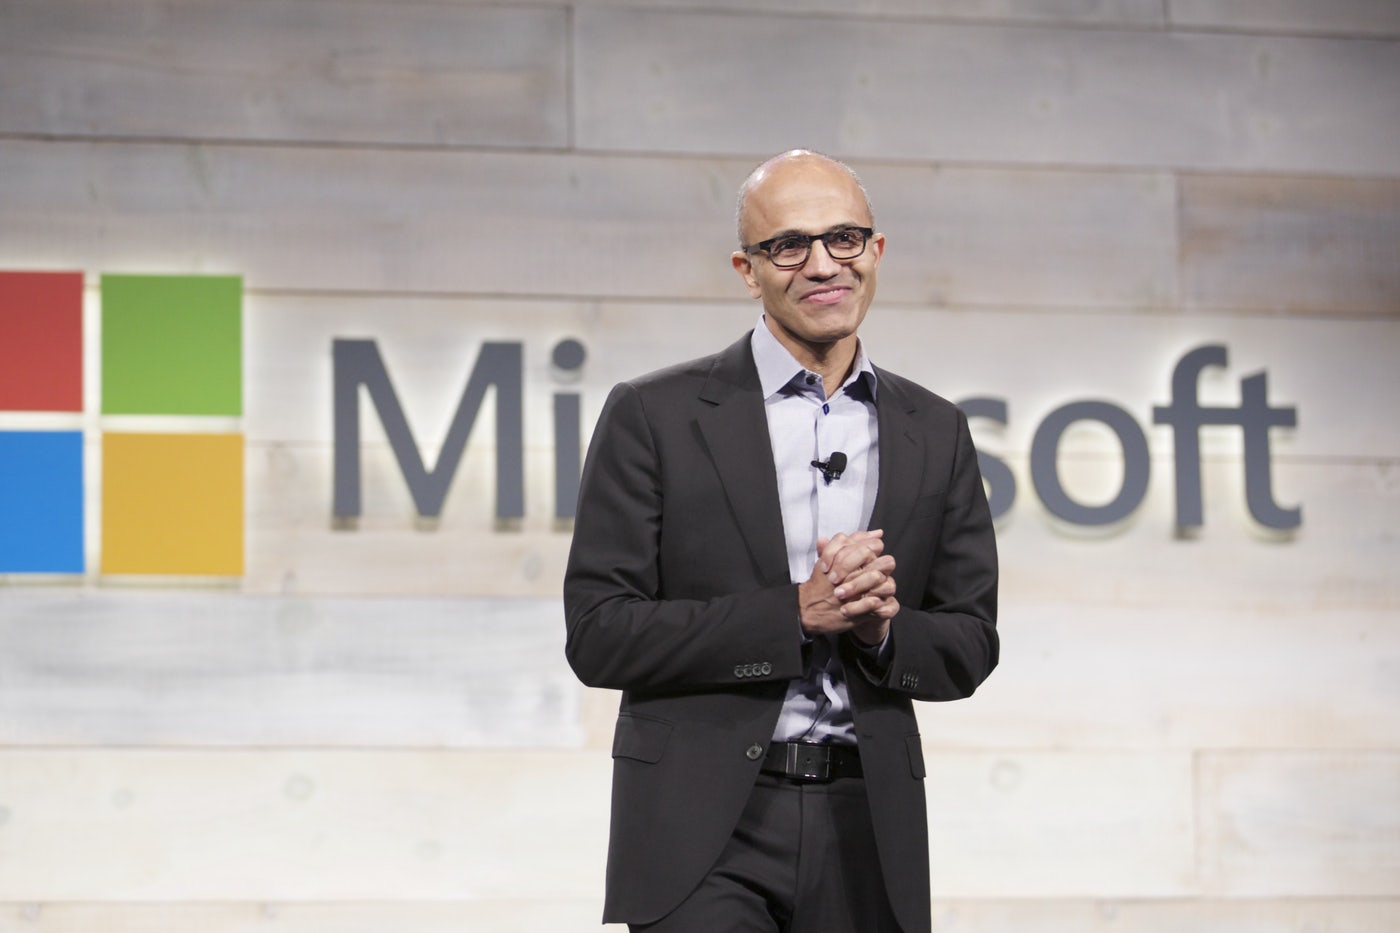 Microsoft CEO Satya Nadella speaks in front of a Microsoft logo.